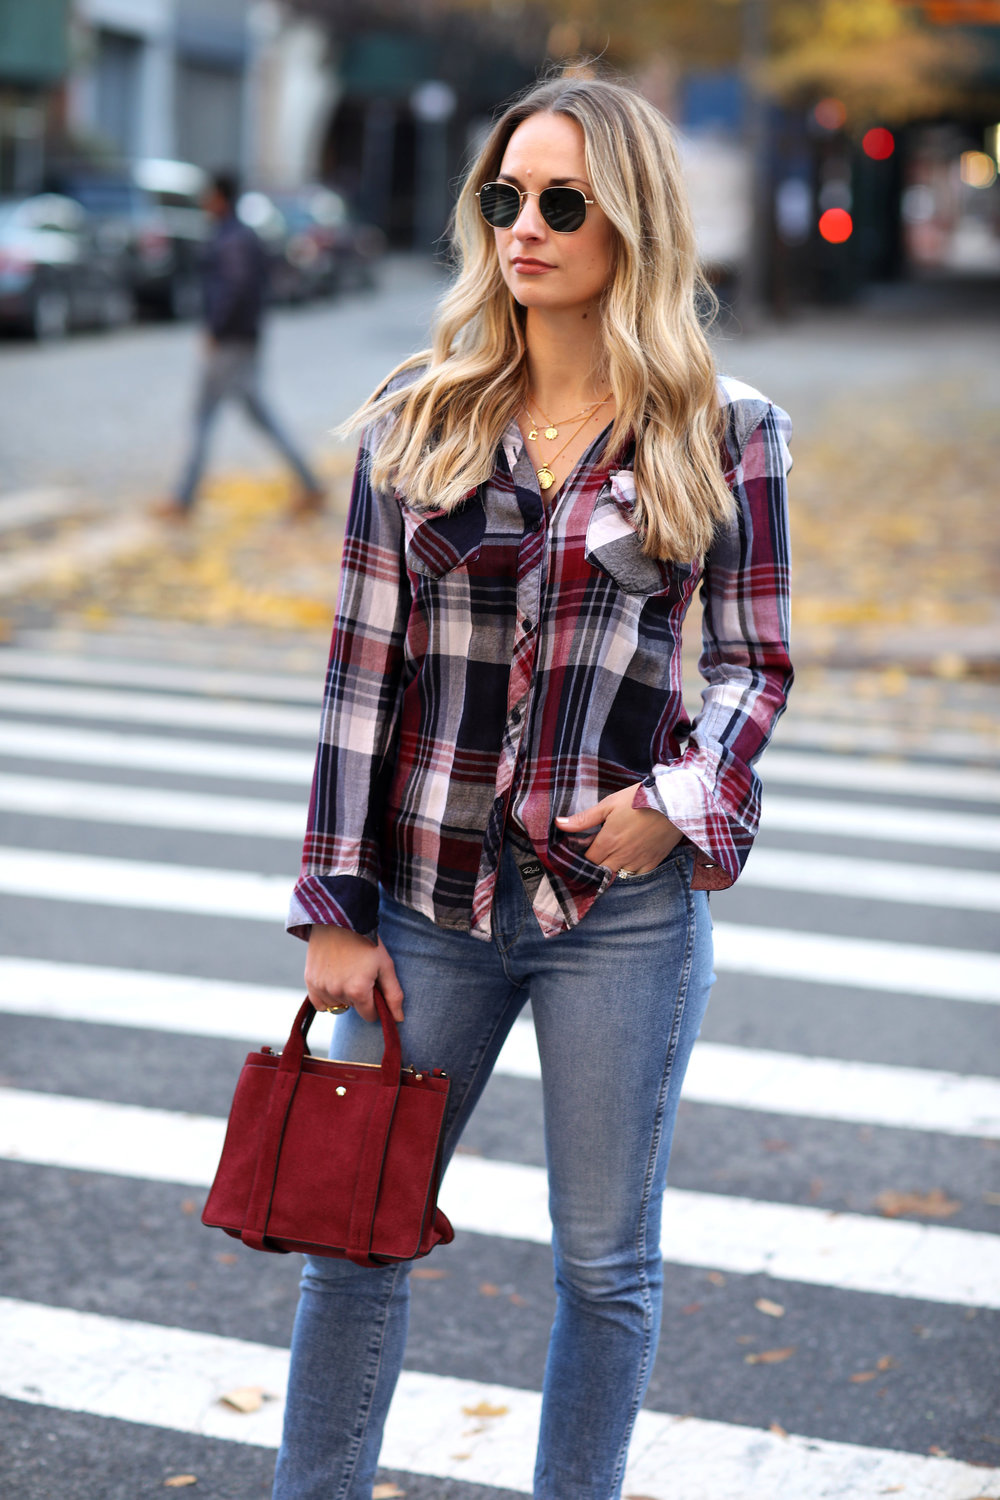 jeans and plaid